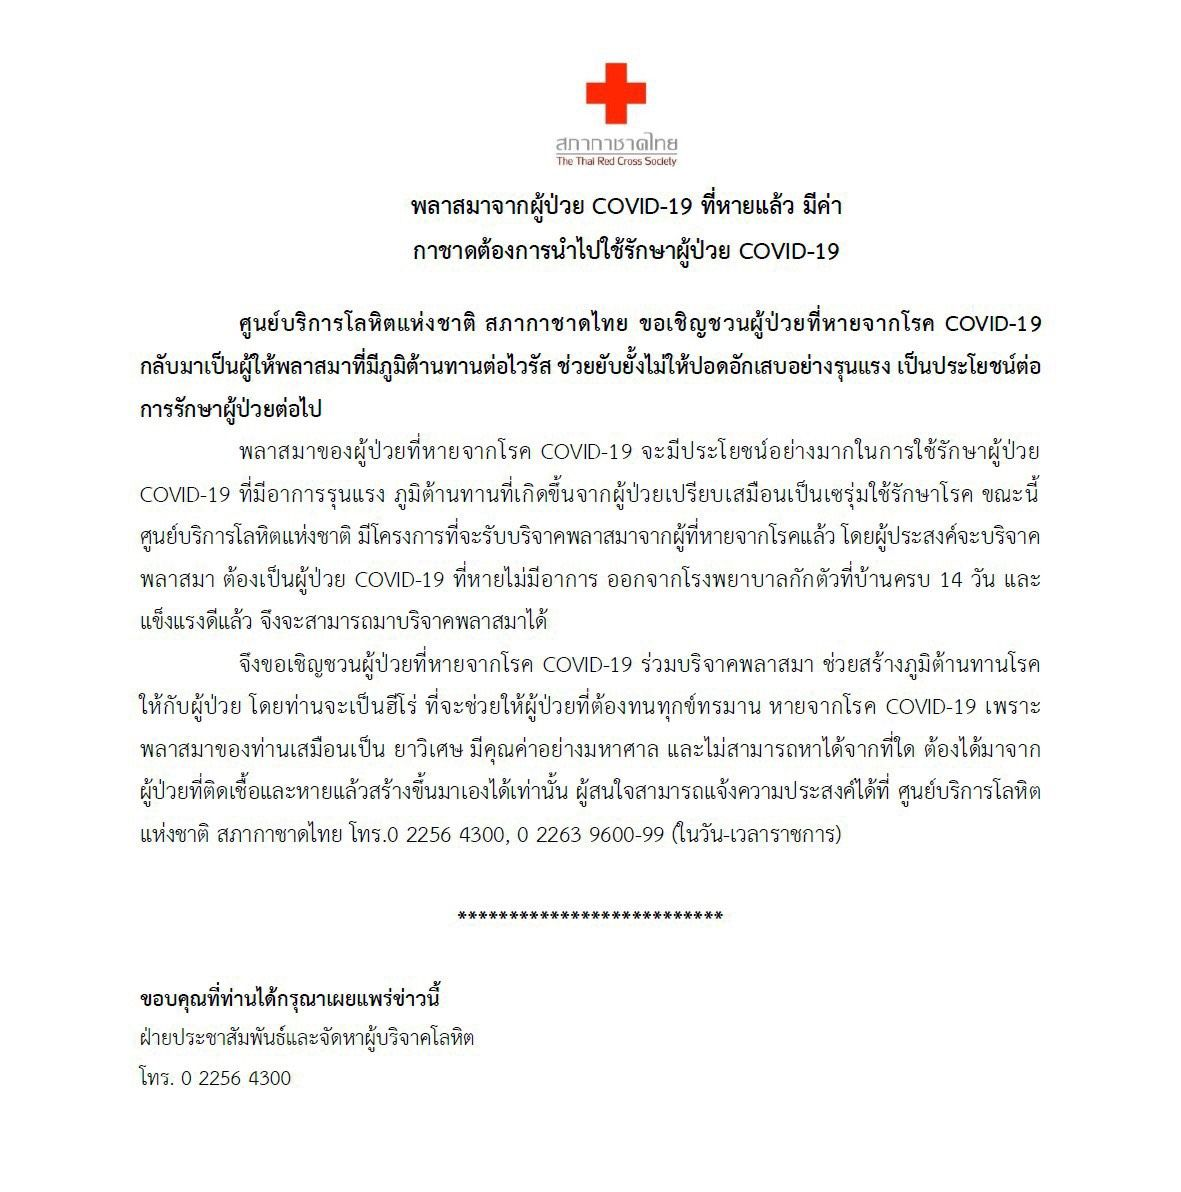 Thai Red Cross Society launched blood plasma donation for COVID-19 patients